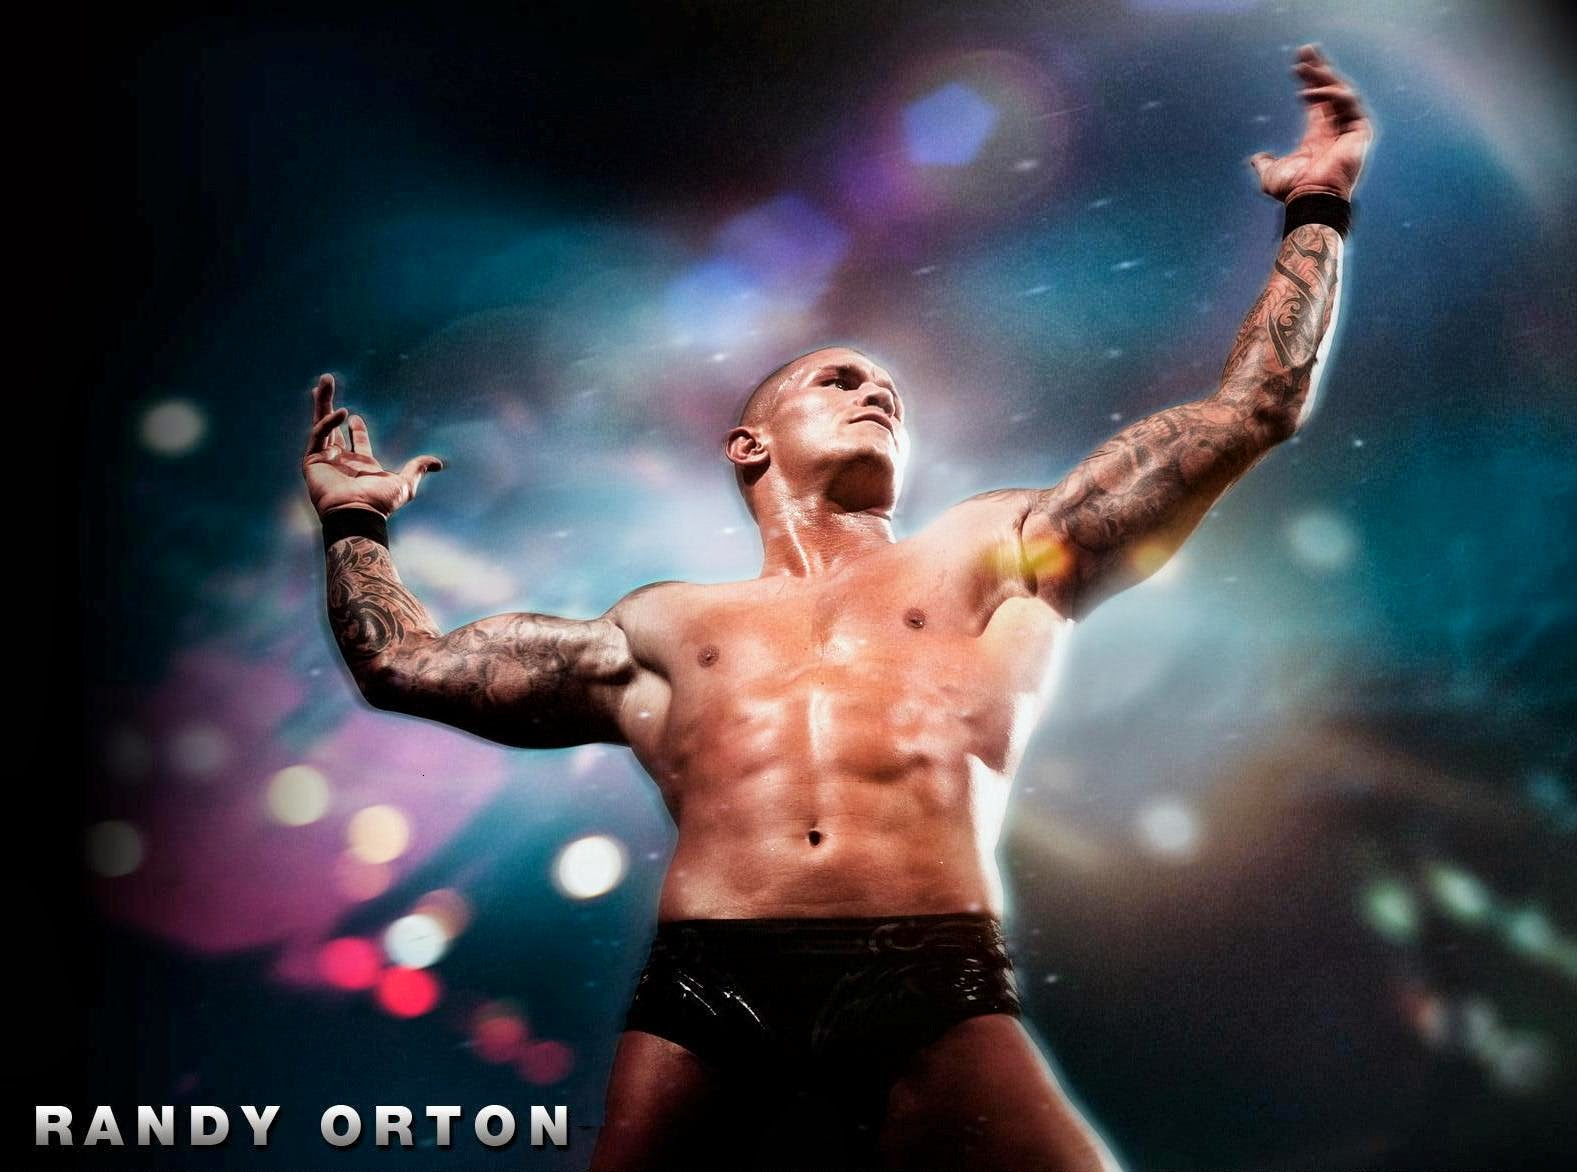 Randy Orton Hd Wallpapers Free Download Wwe Hd Wallpaper Free Download